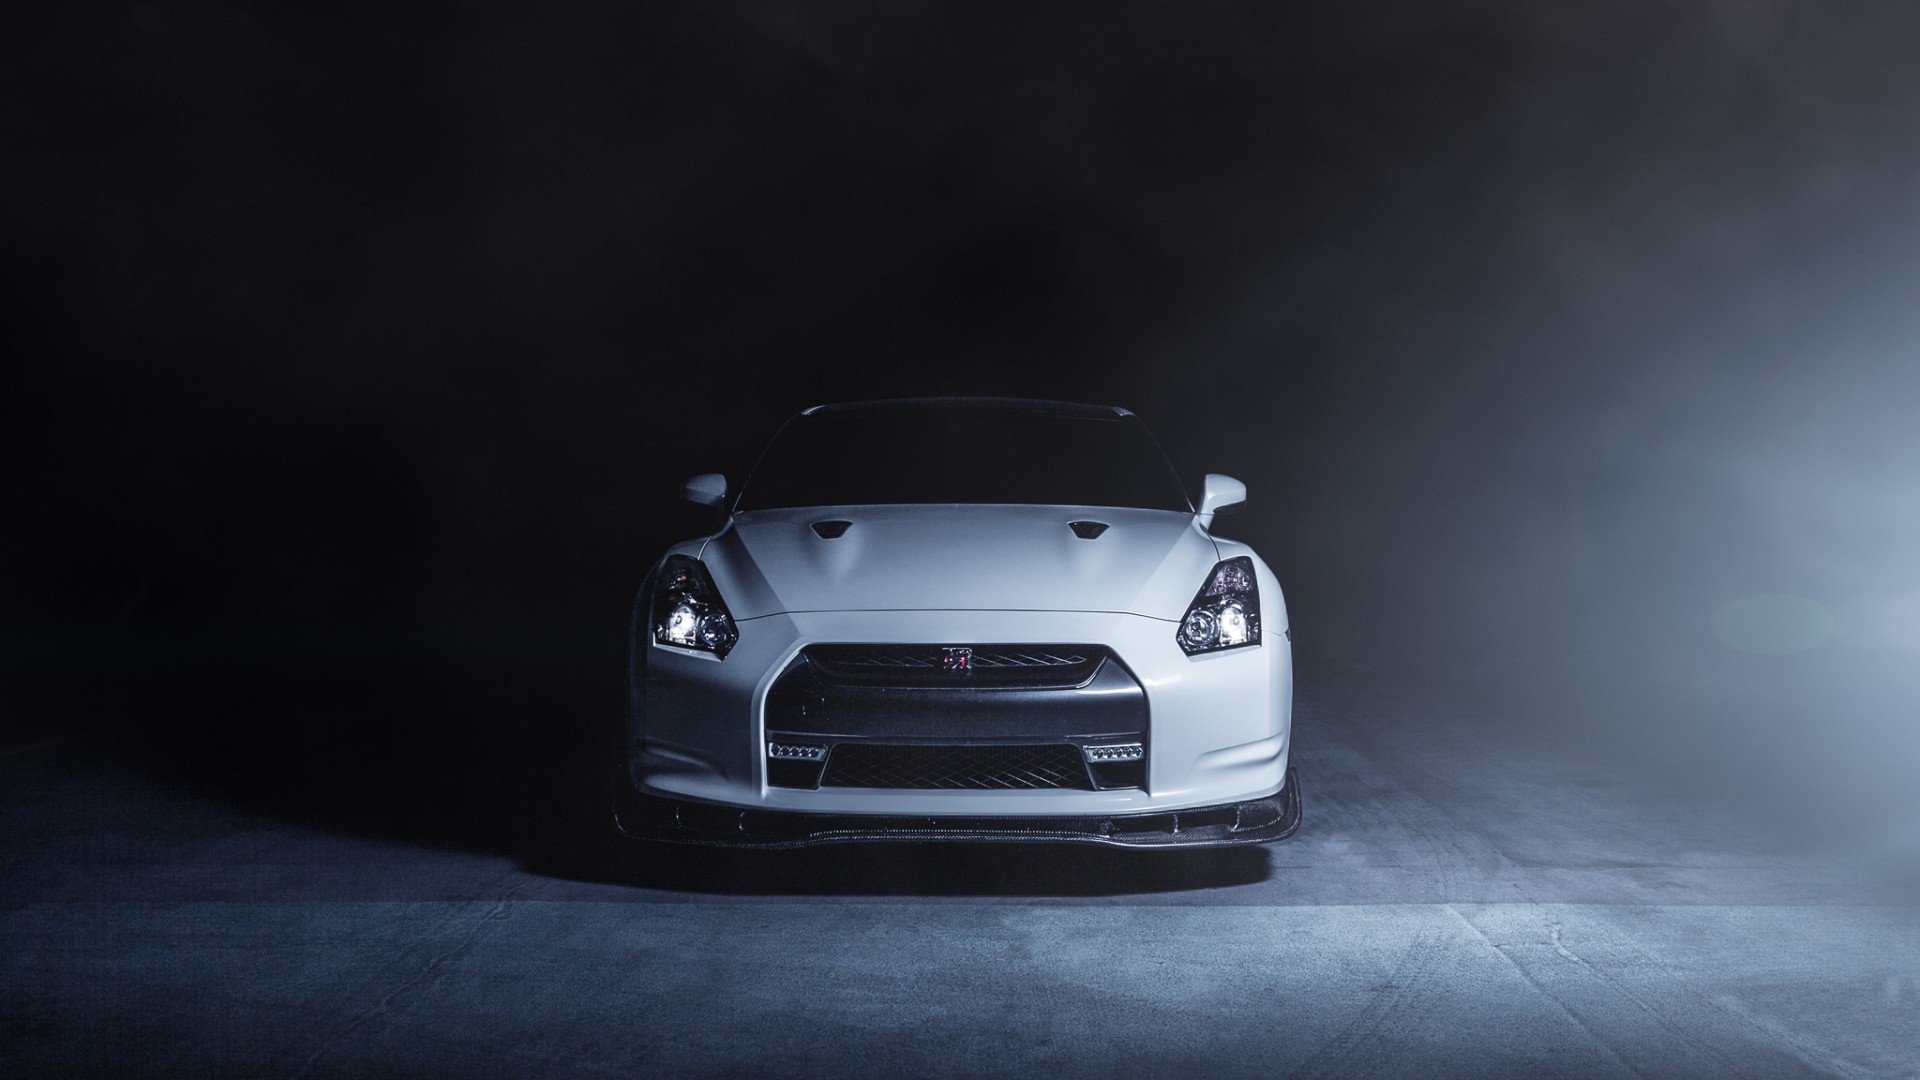 Sick Iphone Wallpapers Hd Nissan Gtr R35 Hd Cars 4k Wallpapers Images